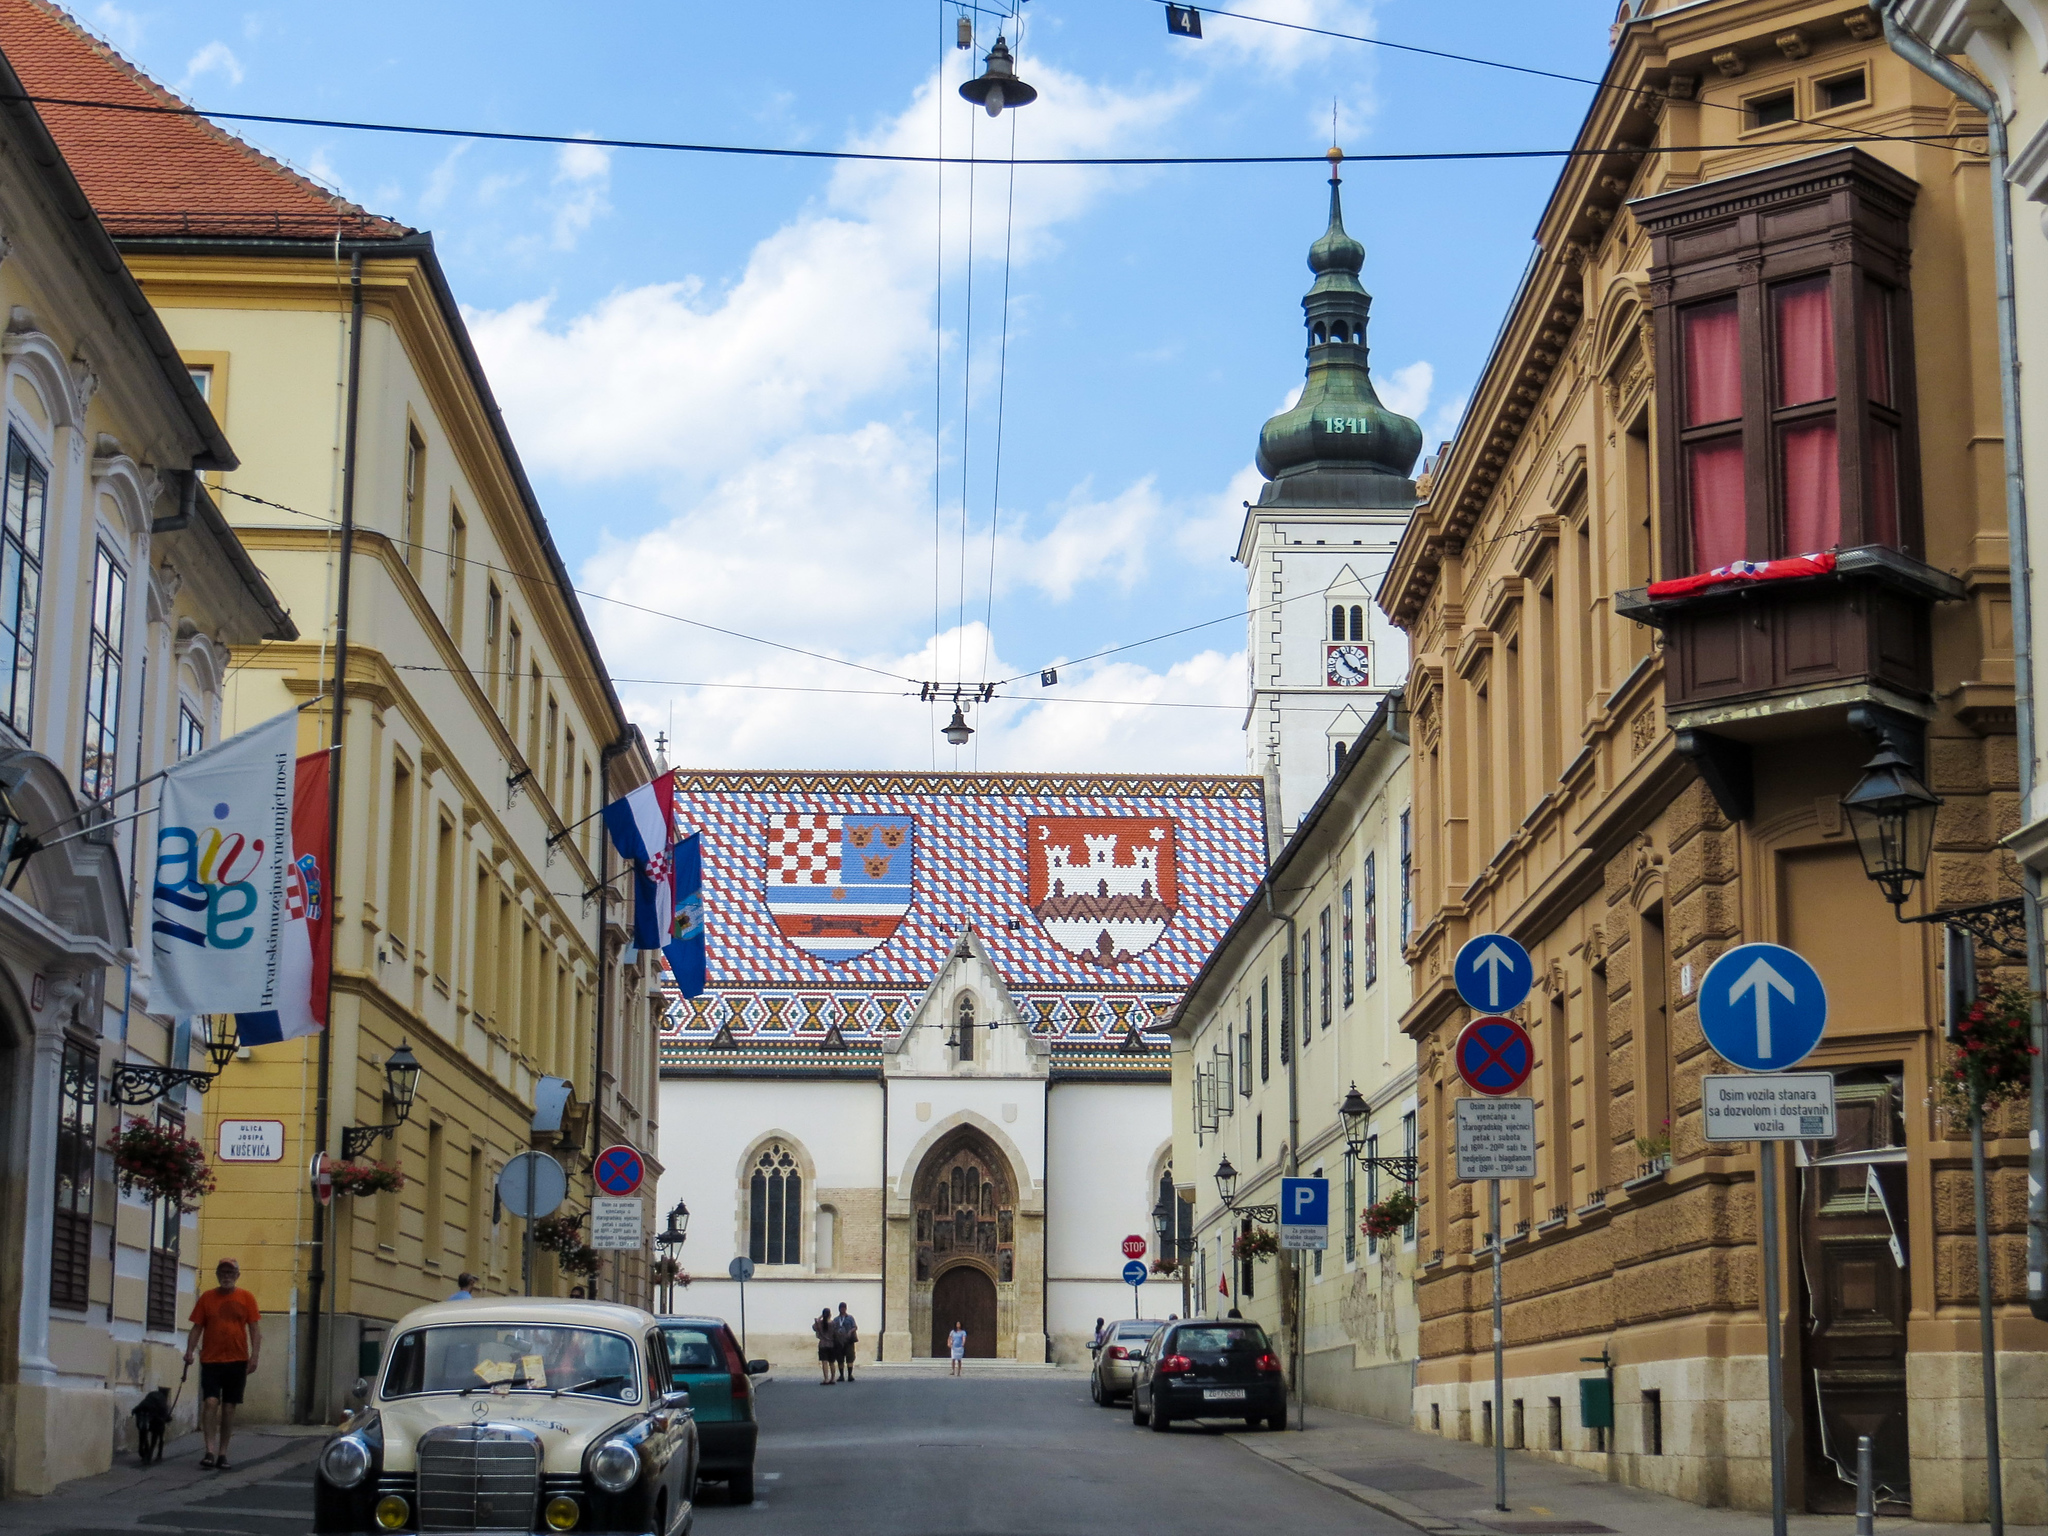 traveling to europe for the first time? give zagreb a chance